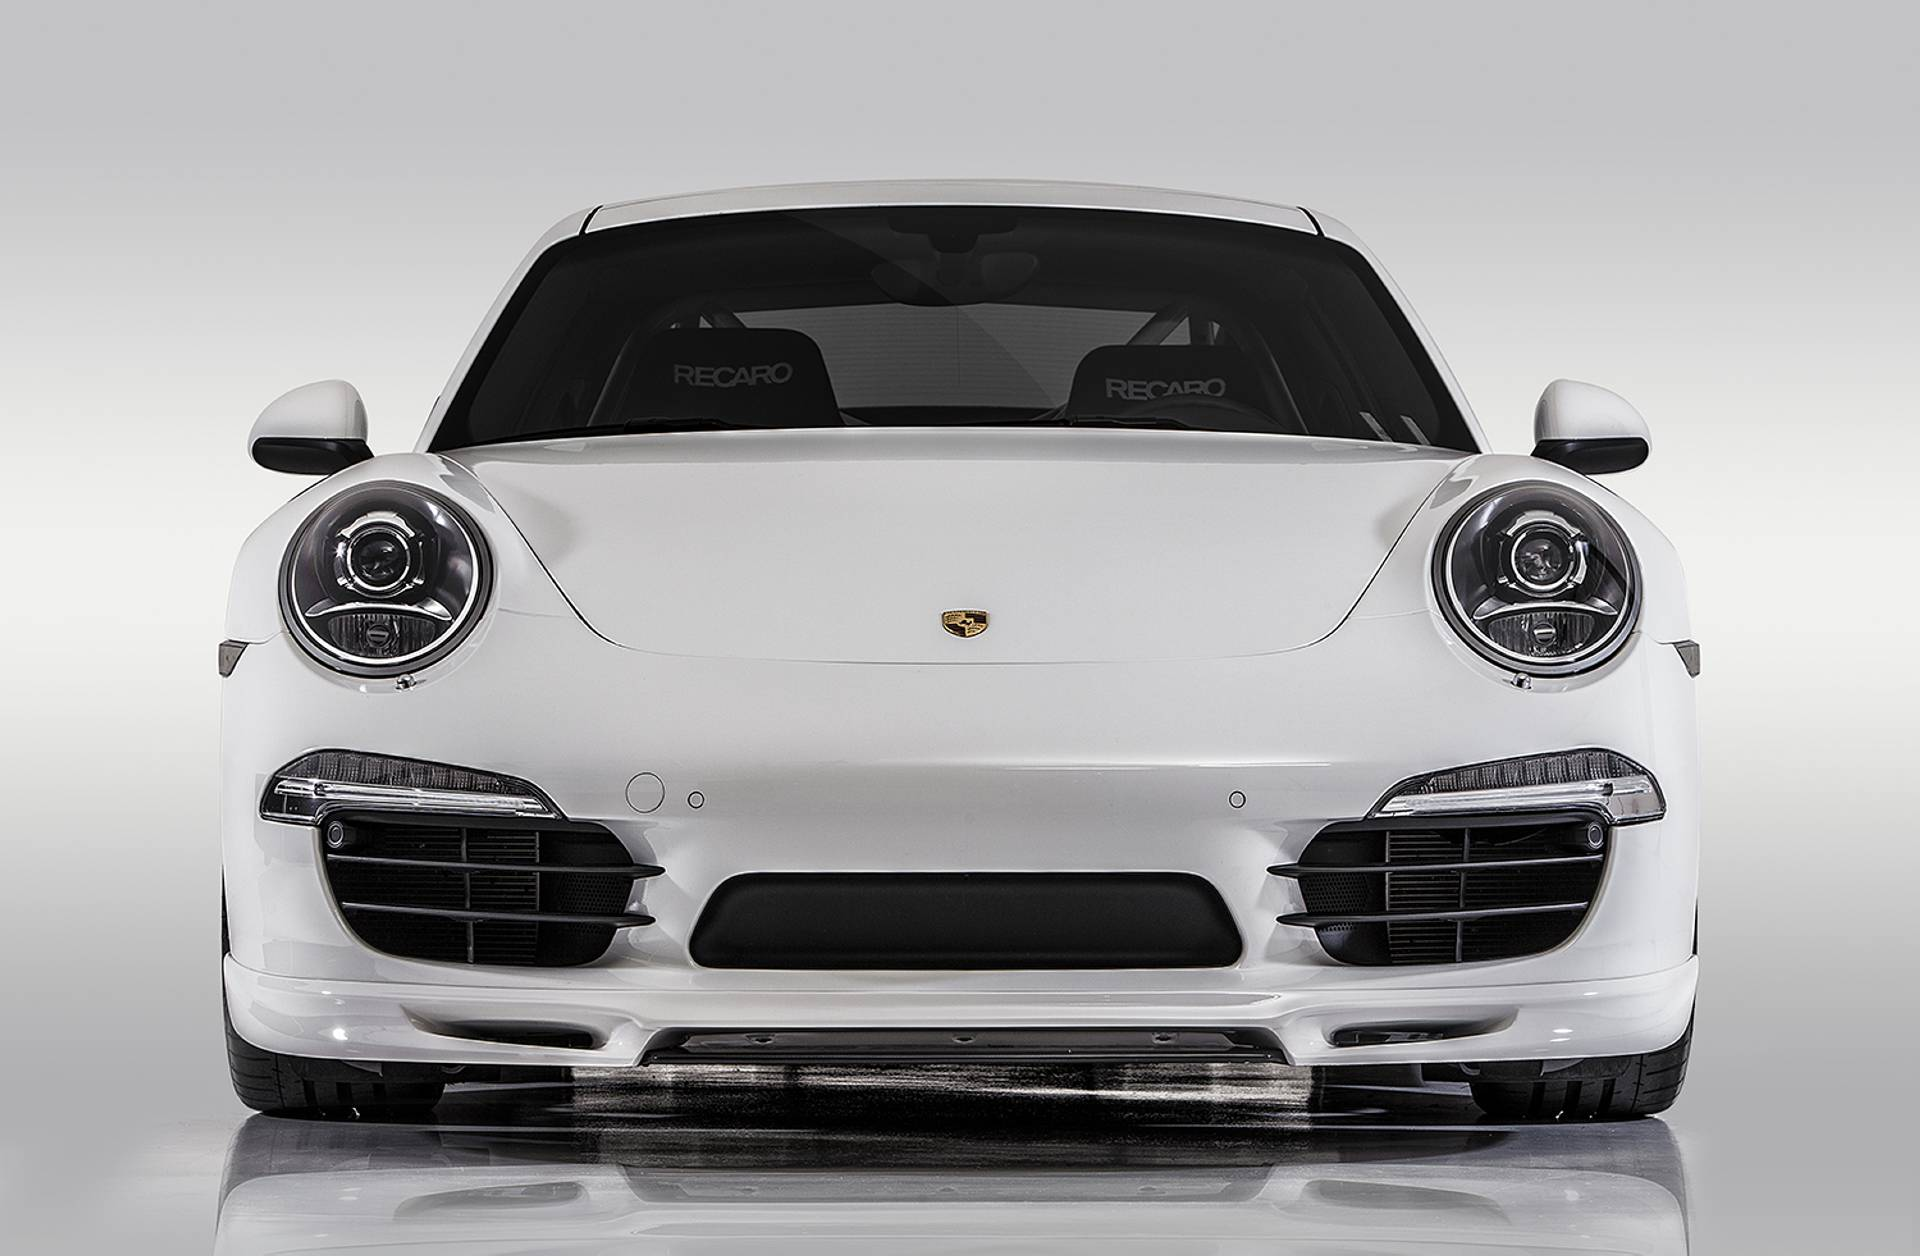 Black And White Vintage Car Wallpaper 2013 Vorsteiner 991 V Gt Carrera News And Information